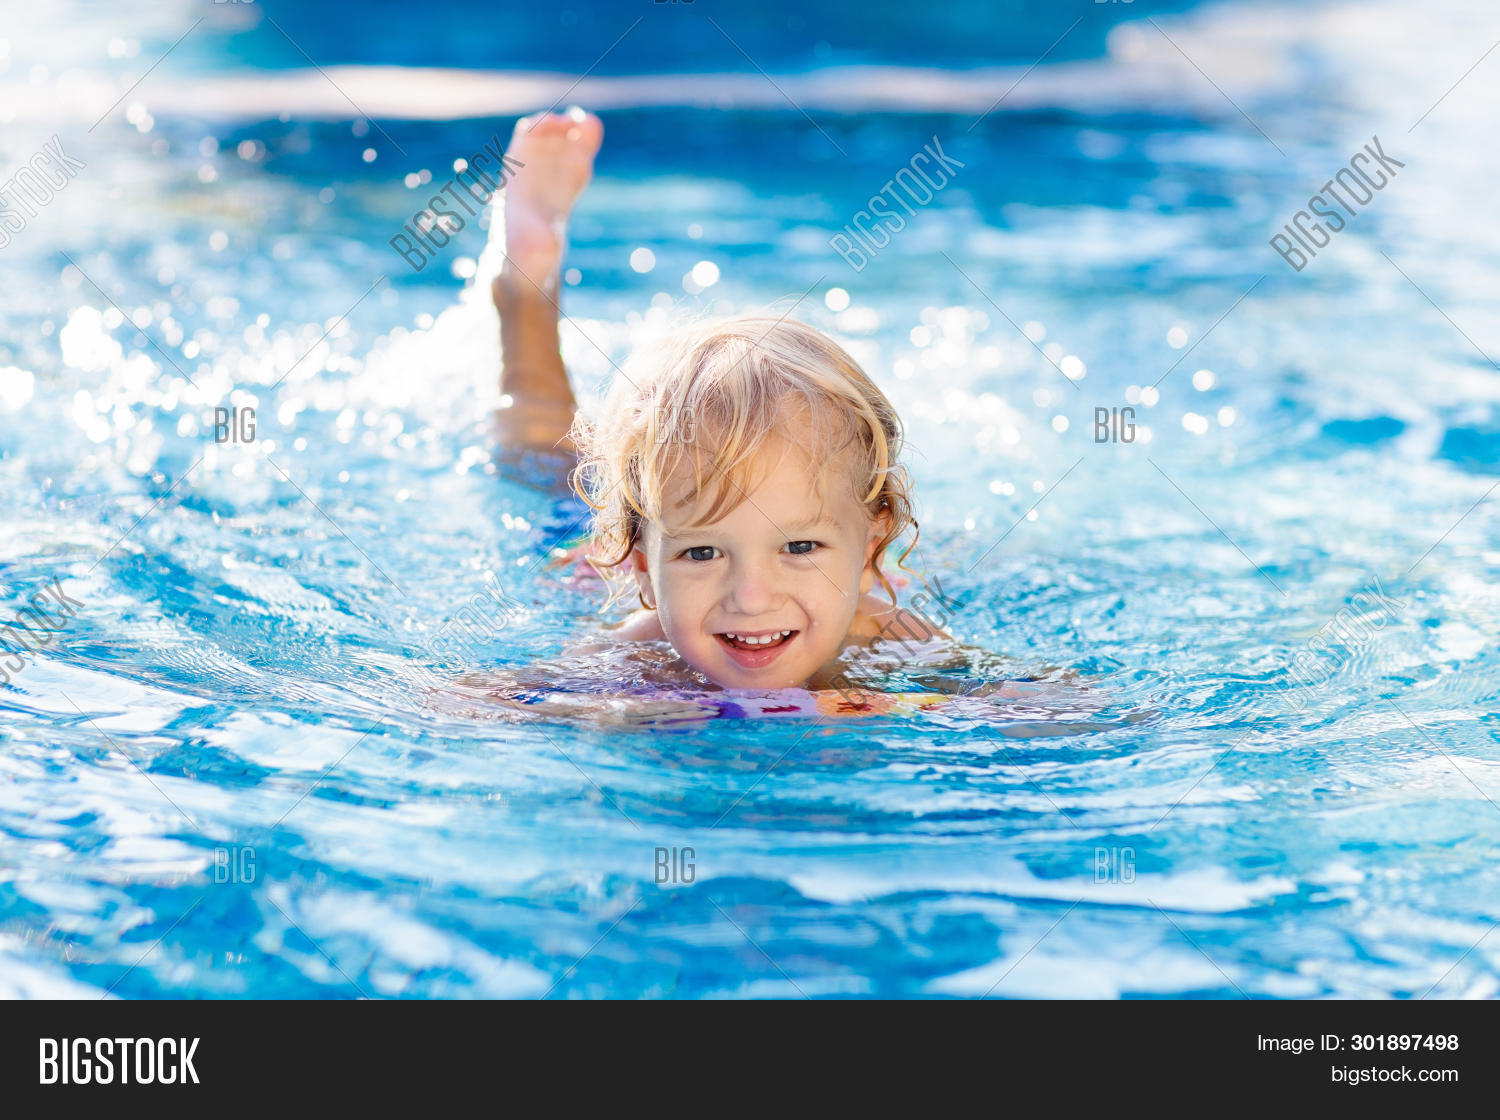 active,activity,baby,beach,board,boy,child,childhood,children,club,colorful,exercise,exotic,family,first,float,fun,girl,happy,healthy,holiday,kid,learn,learning,lesson,little,outdoor,people,playing,pool,rainbow,resort,school,sea,splash,sport,summer,surf,swim,swimmer,swimming,toddler,training,travel,tropical,try,vacation,water,young